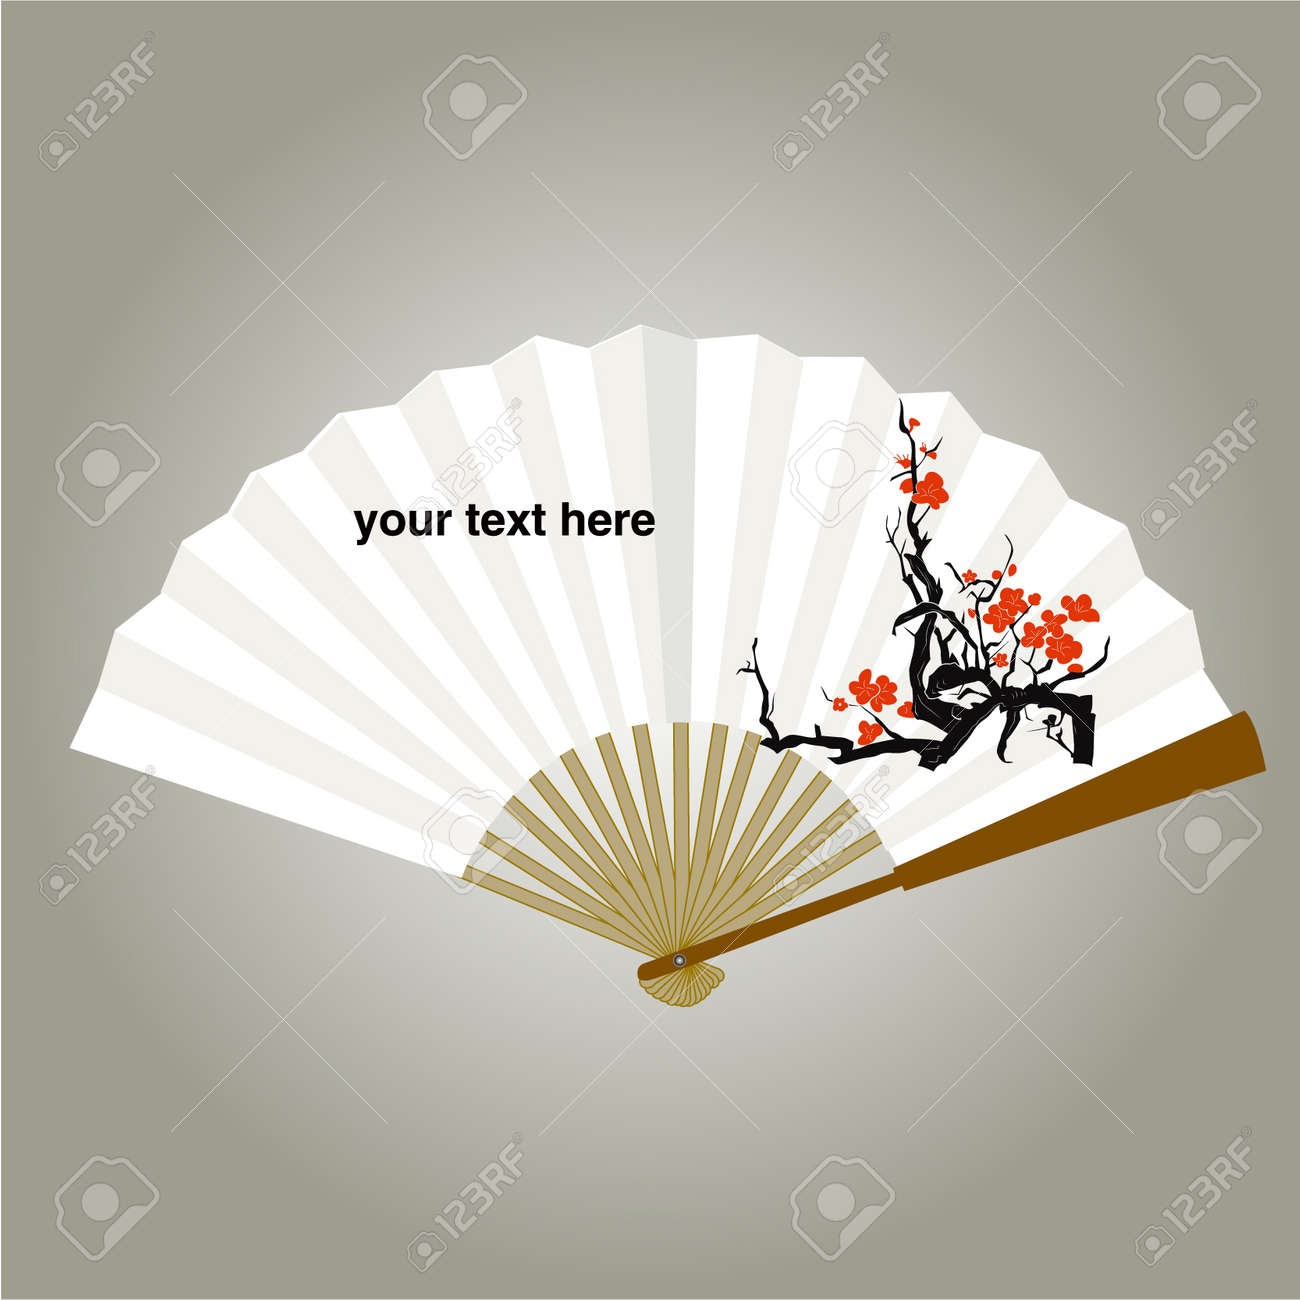 chinese fan painping vector Backgrounds Stock Vector - 11271907